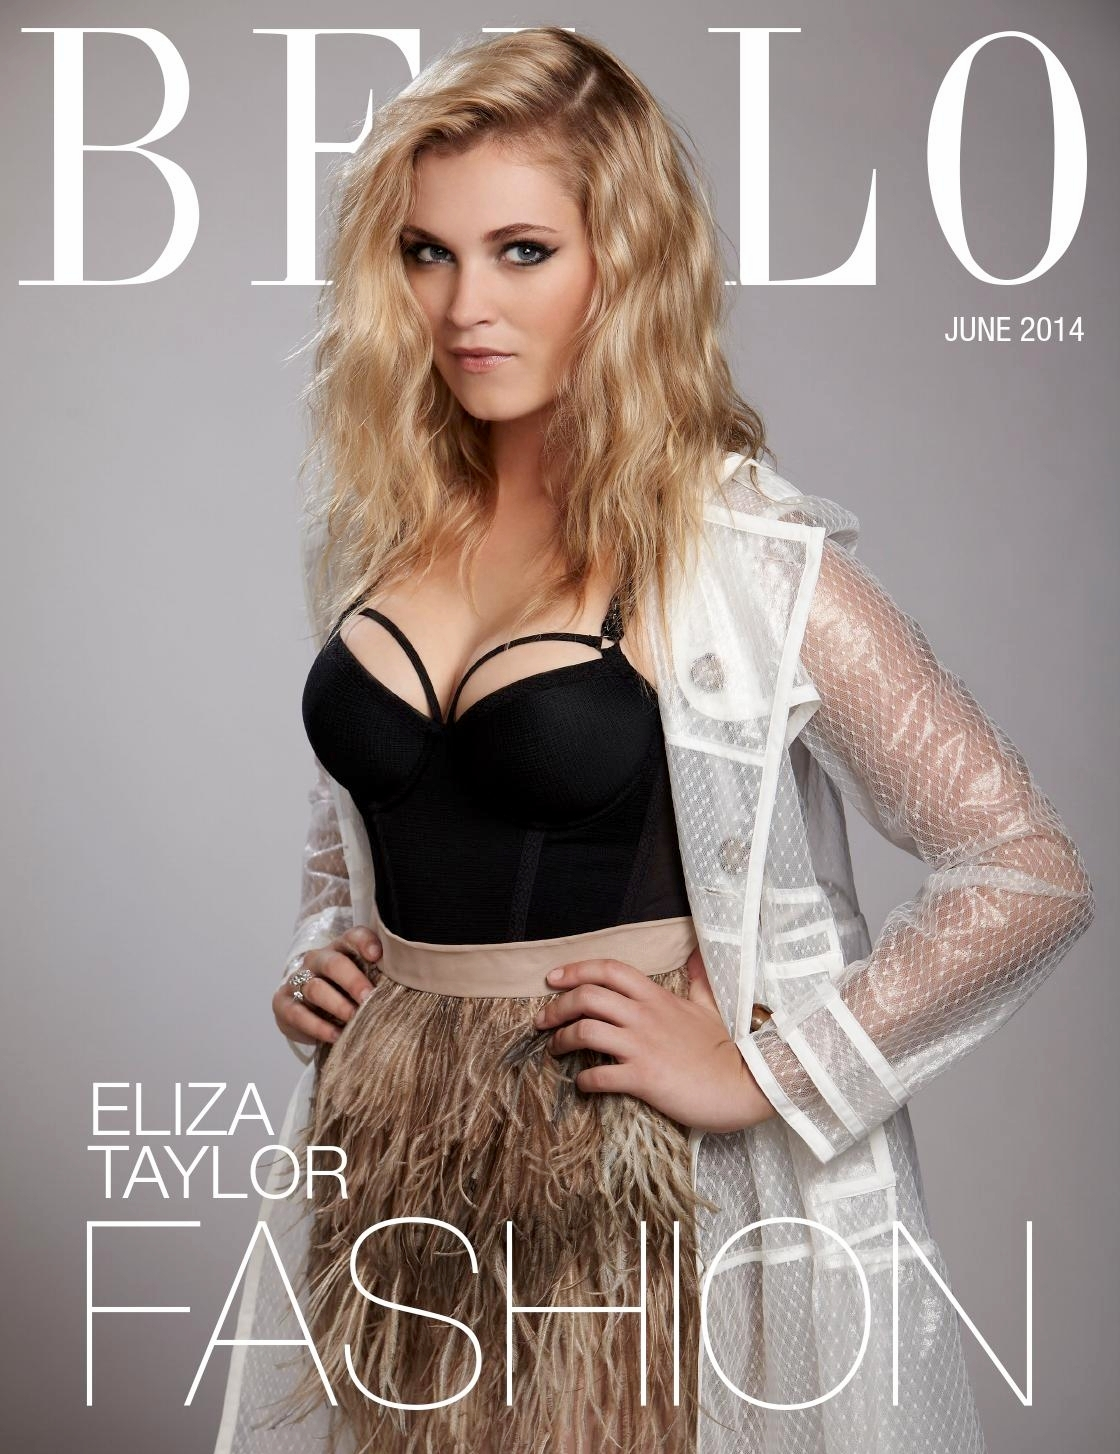 Eliza Taylor by JSquared Photoshoot for Bello Magazine